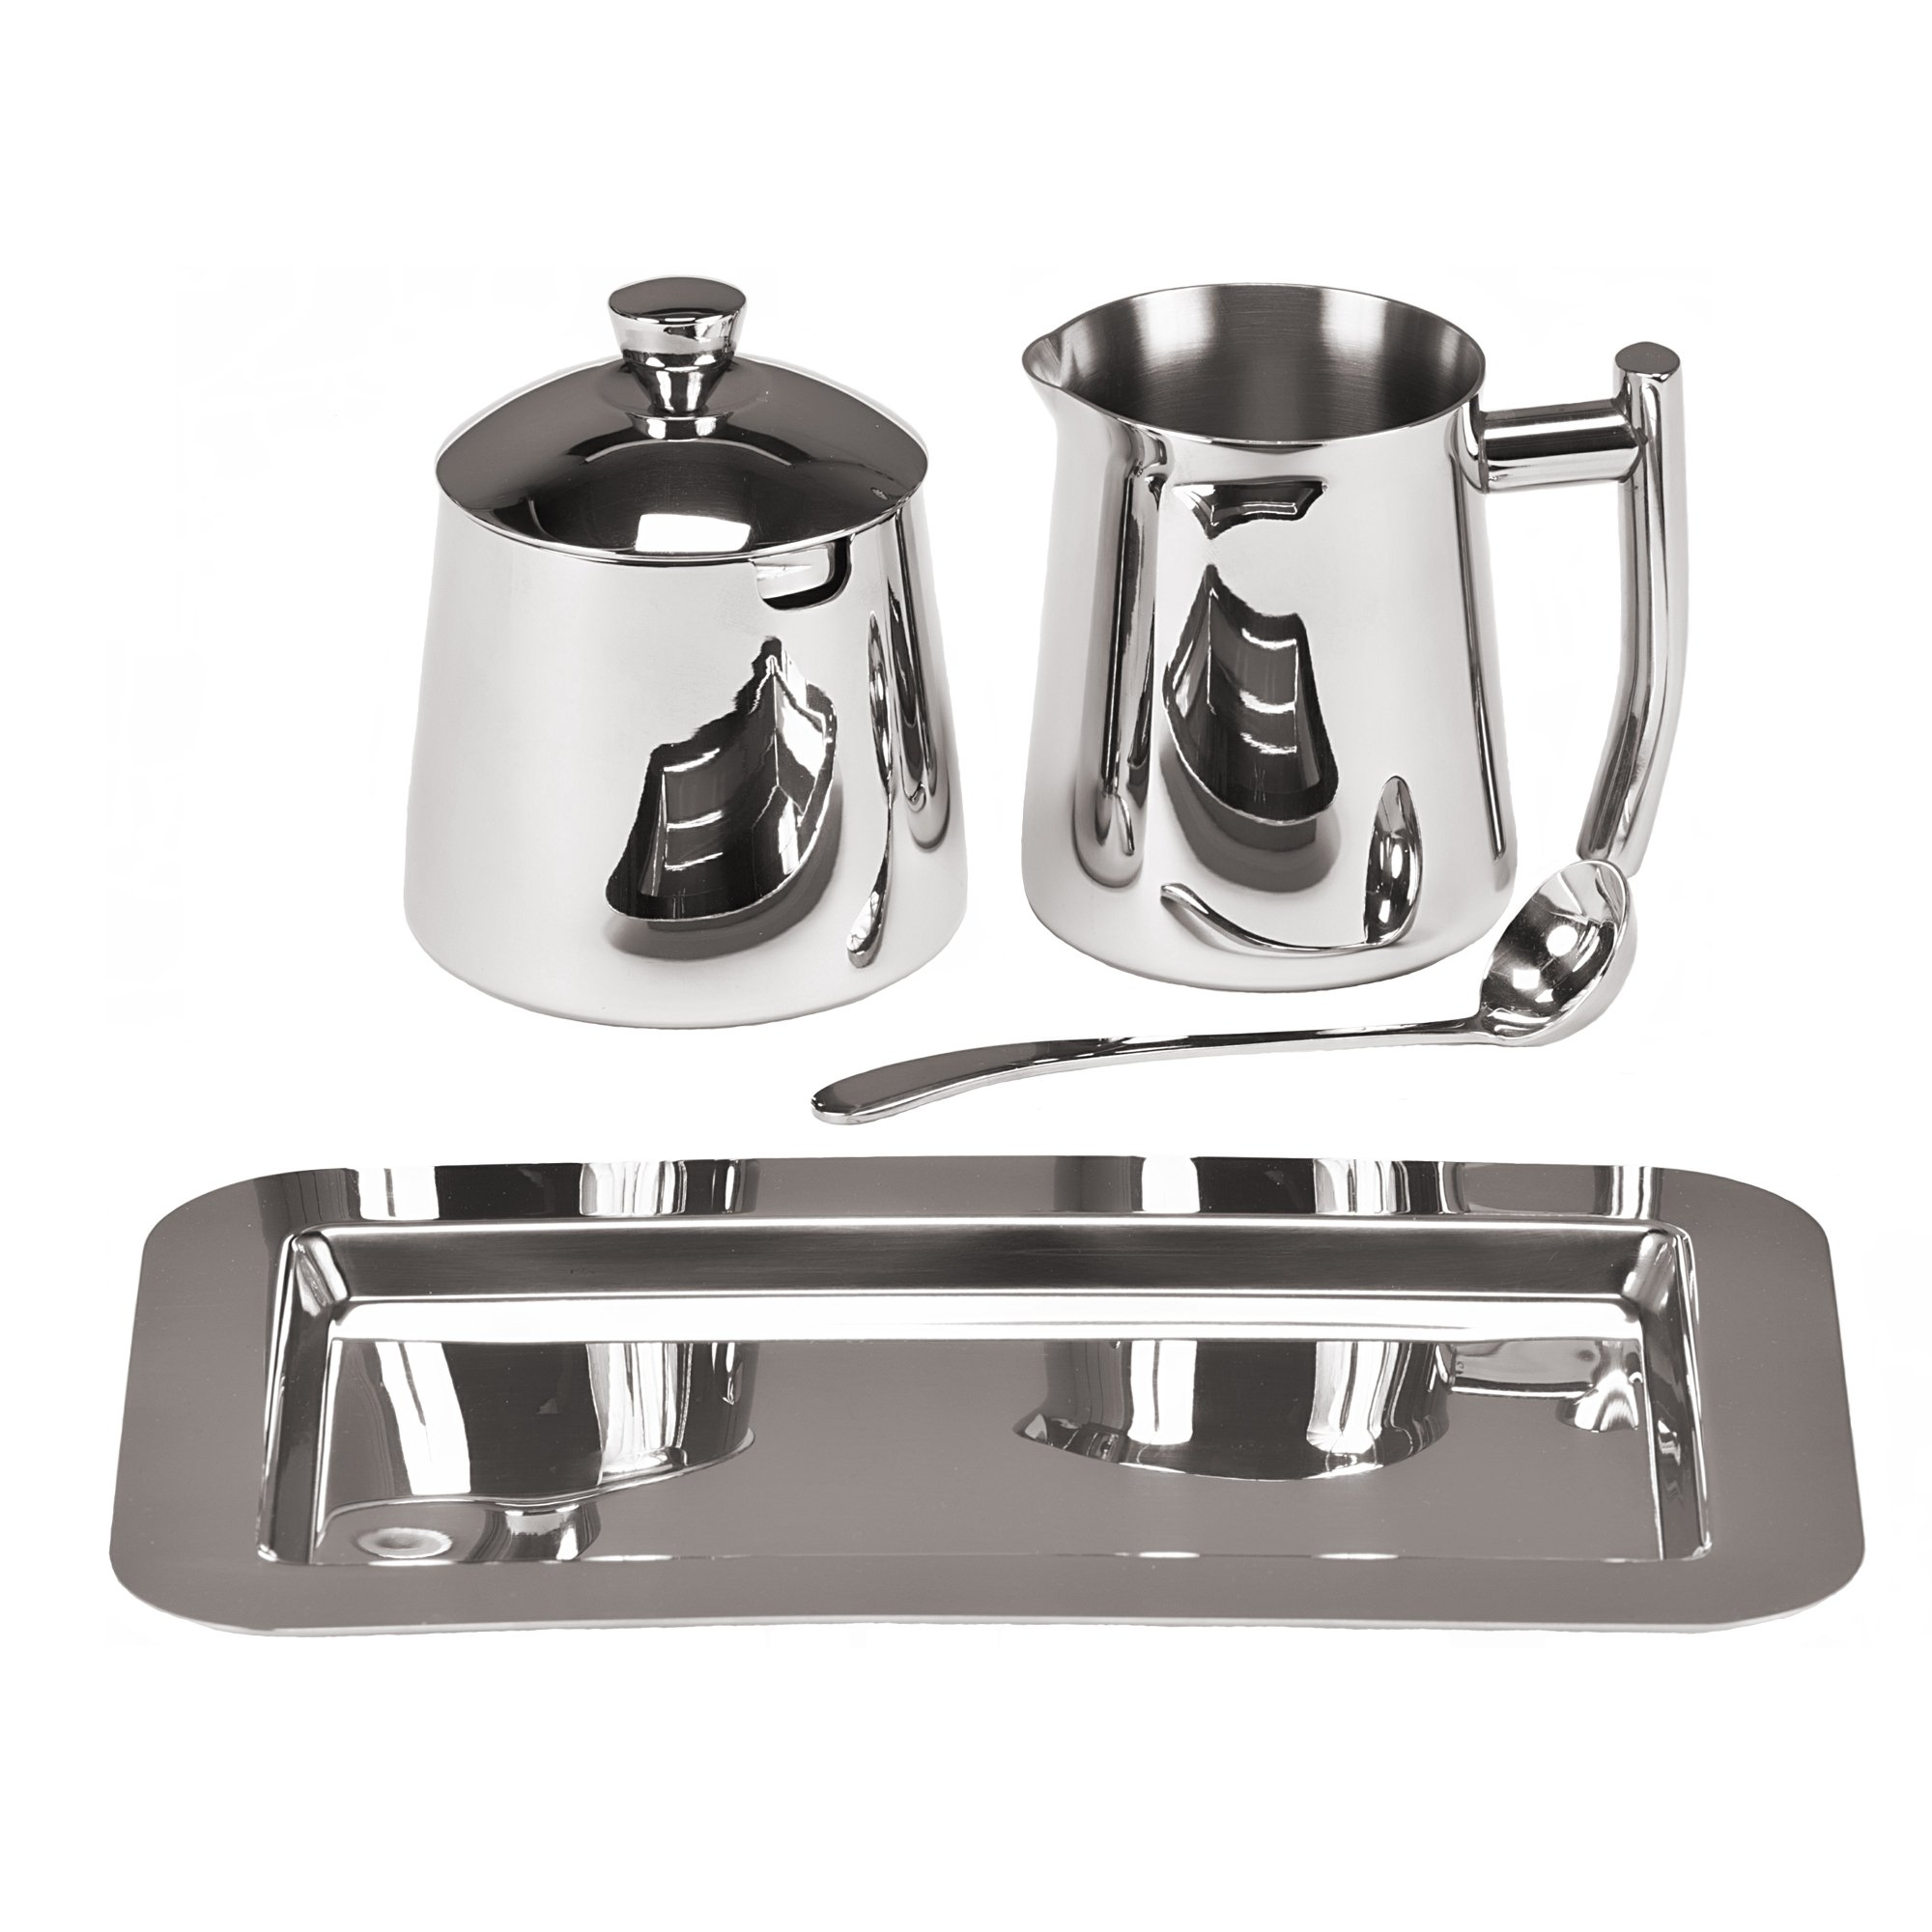 Frieling USA 18/10 Stainless Steel Creamer and Sugar Bowl Set by Frieling